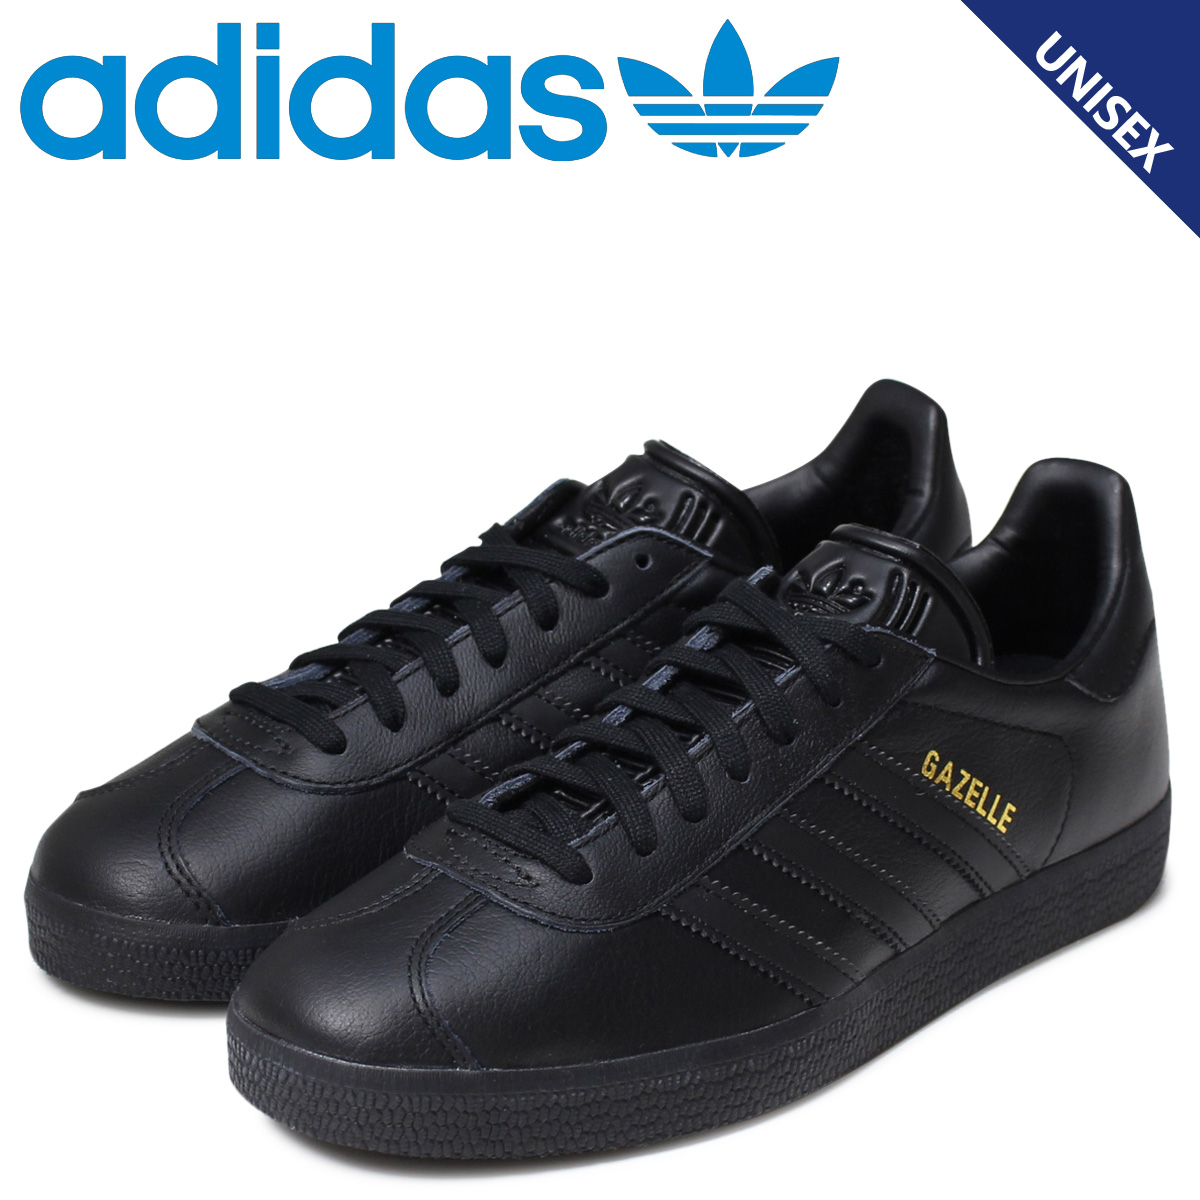 04aaa2db3ea Whats up Sports  Adidas gazelle adidas sneakers men gap Dis ...